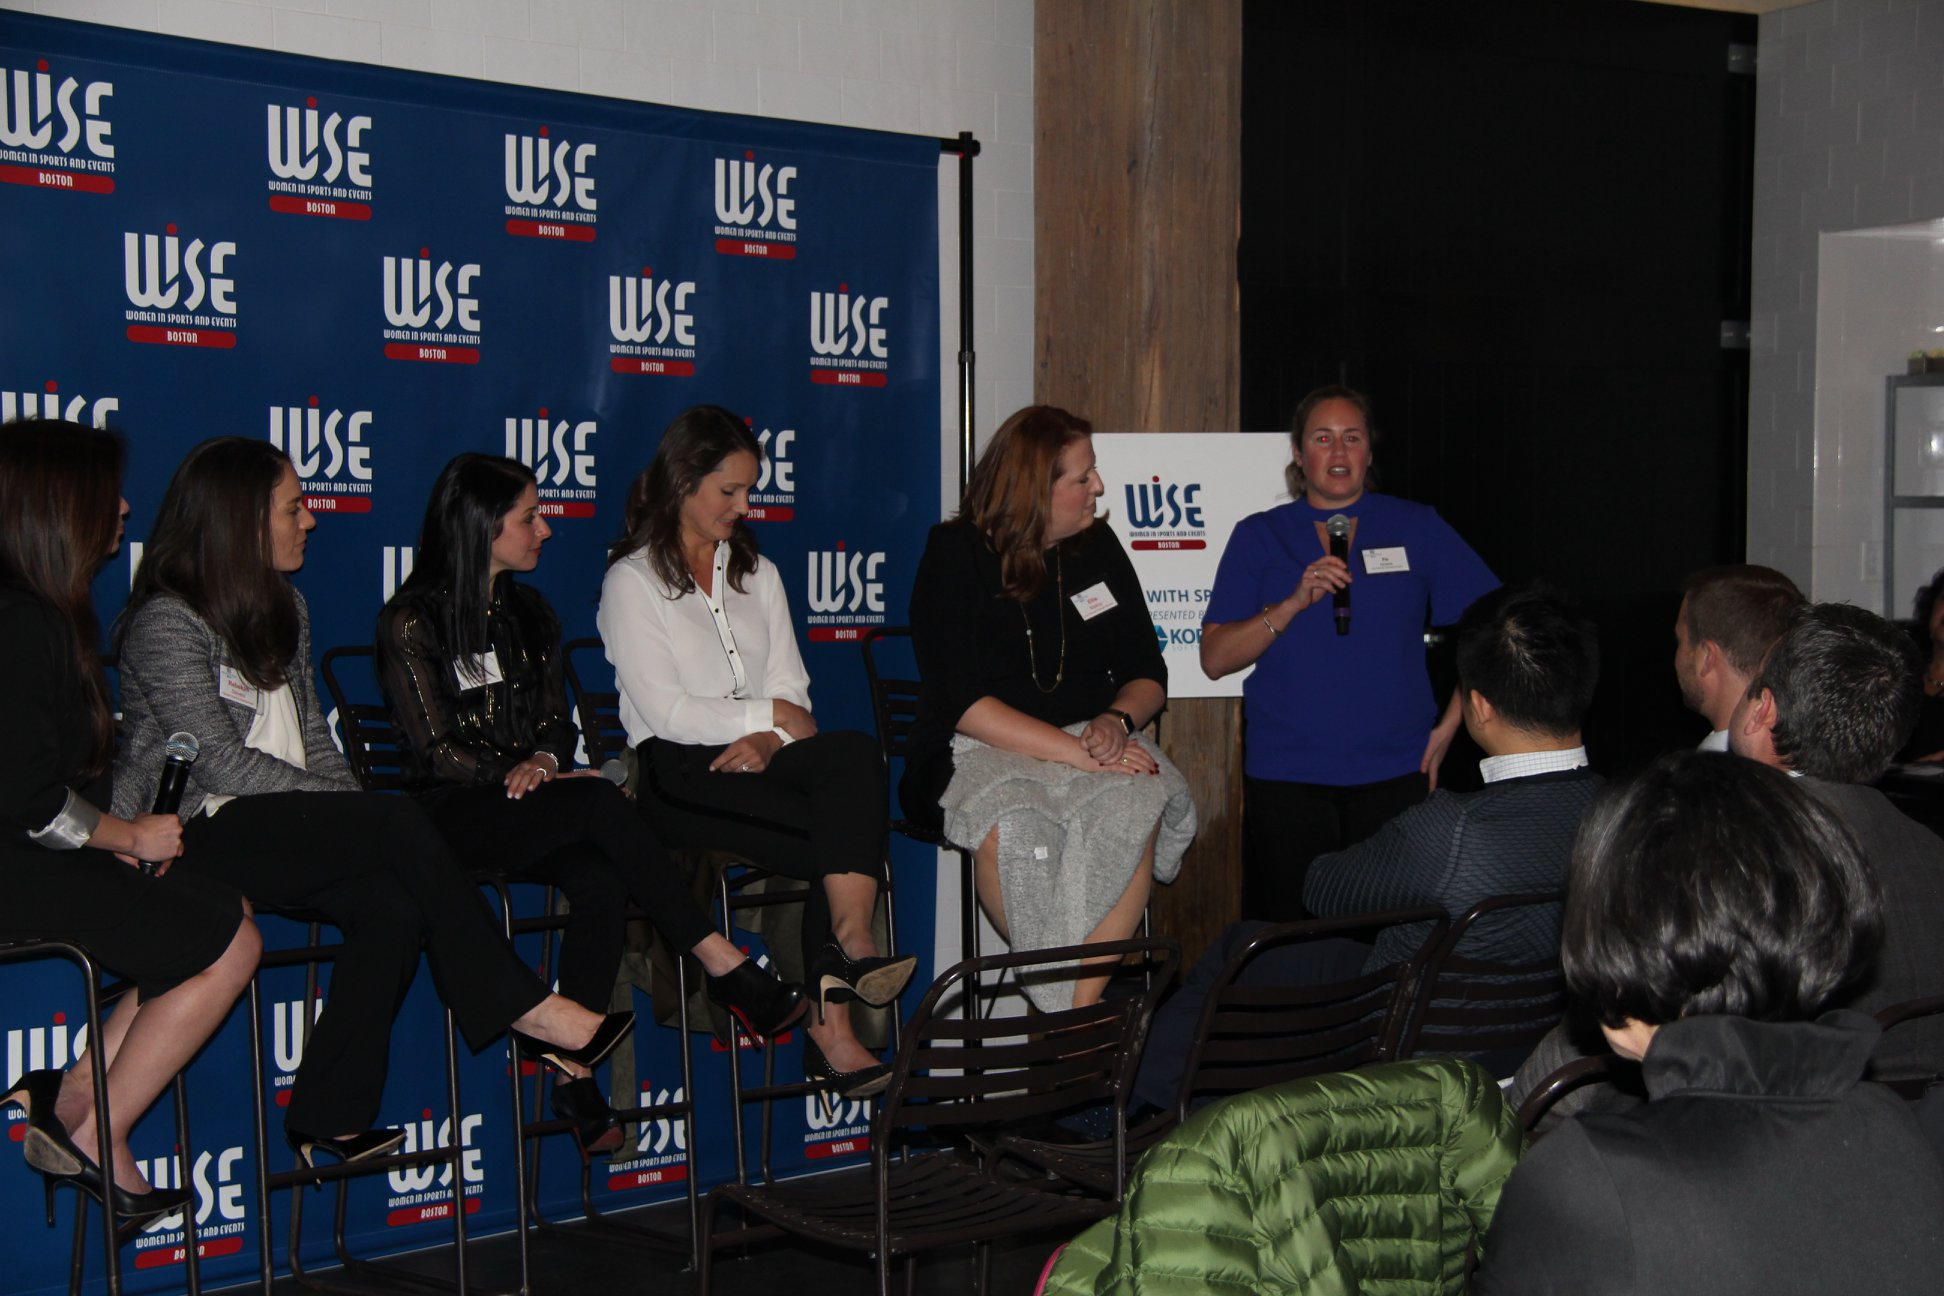 Women in Sports & Events Panel about Sponsorship collaboration between brands and properties.